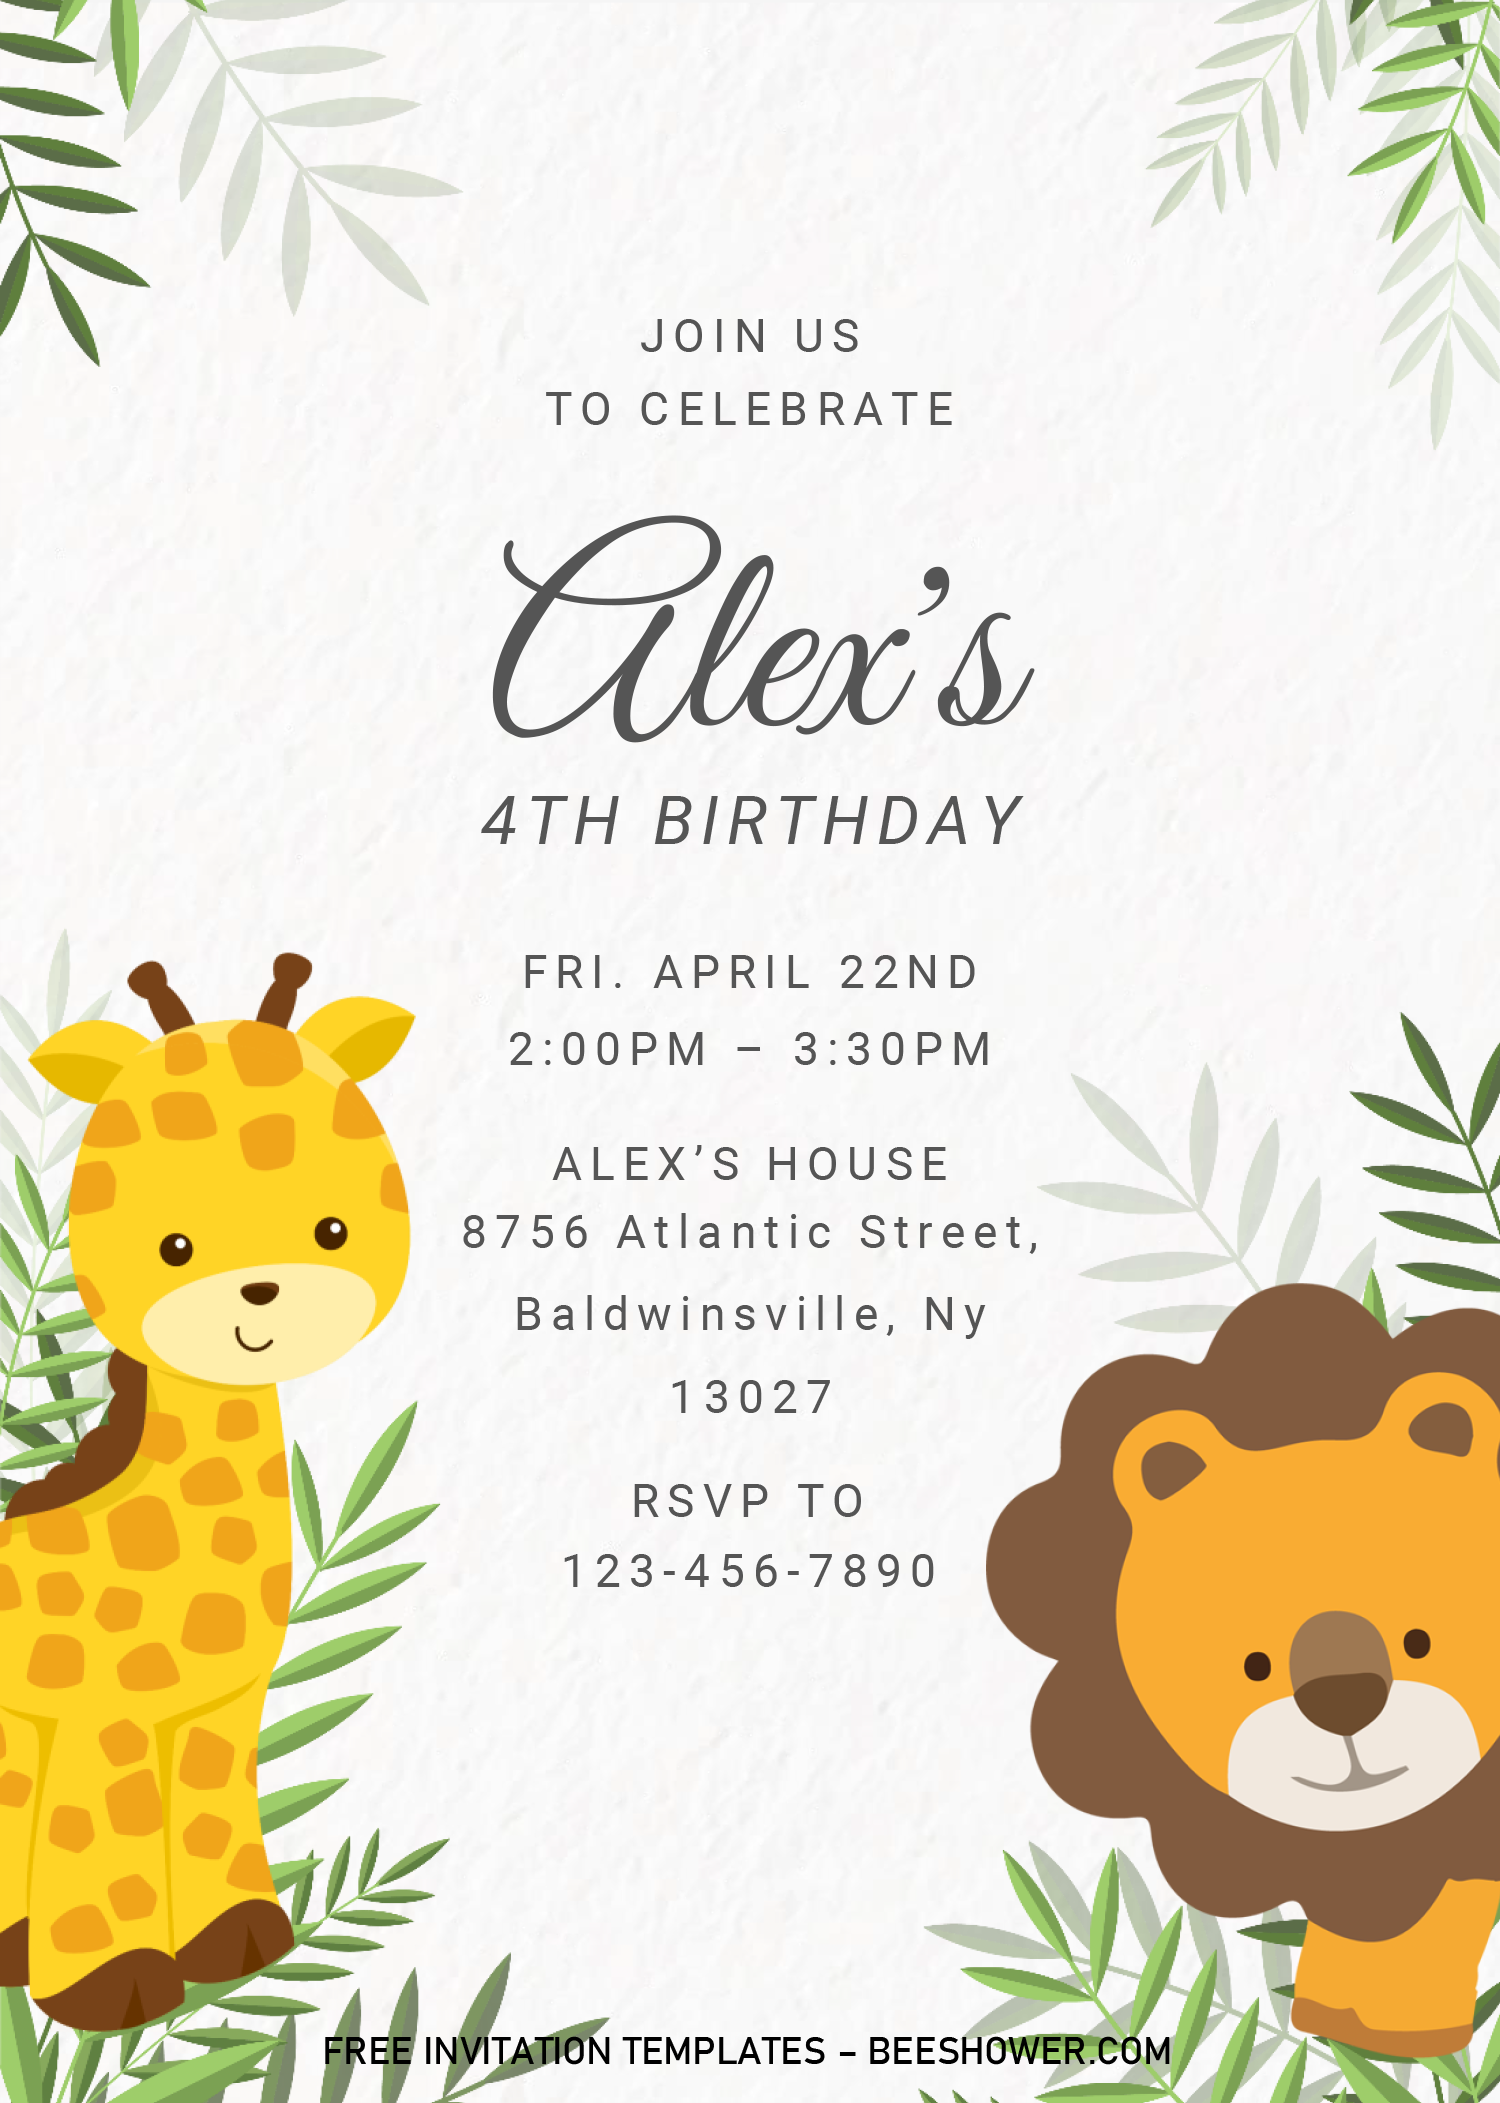 Safari Baby Shower Invitation Templates Editable With Ms W In 2020 Safari Baby Shower Invitations Free Printable Baby Shower Invitations Baby Shower Invitation Cards